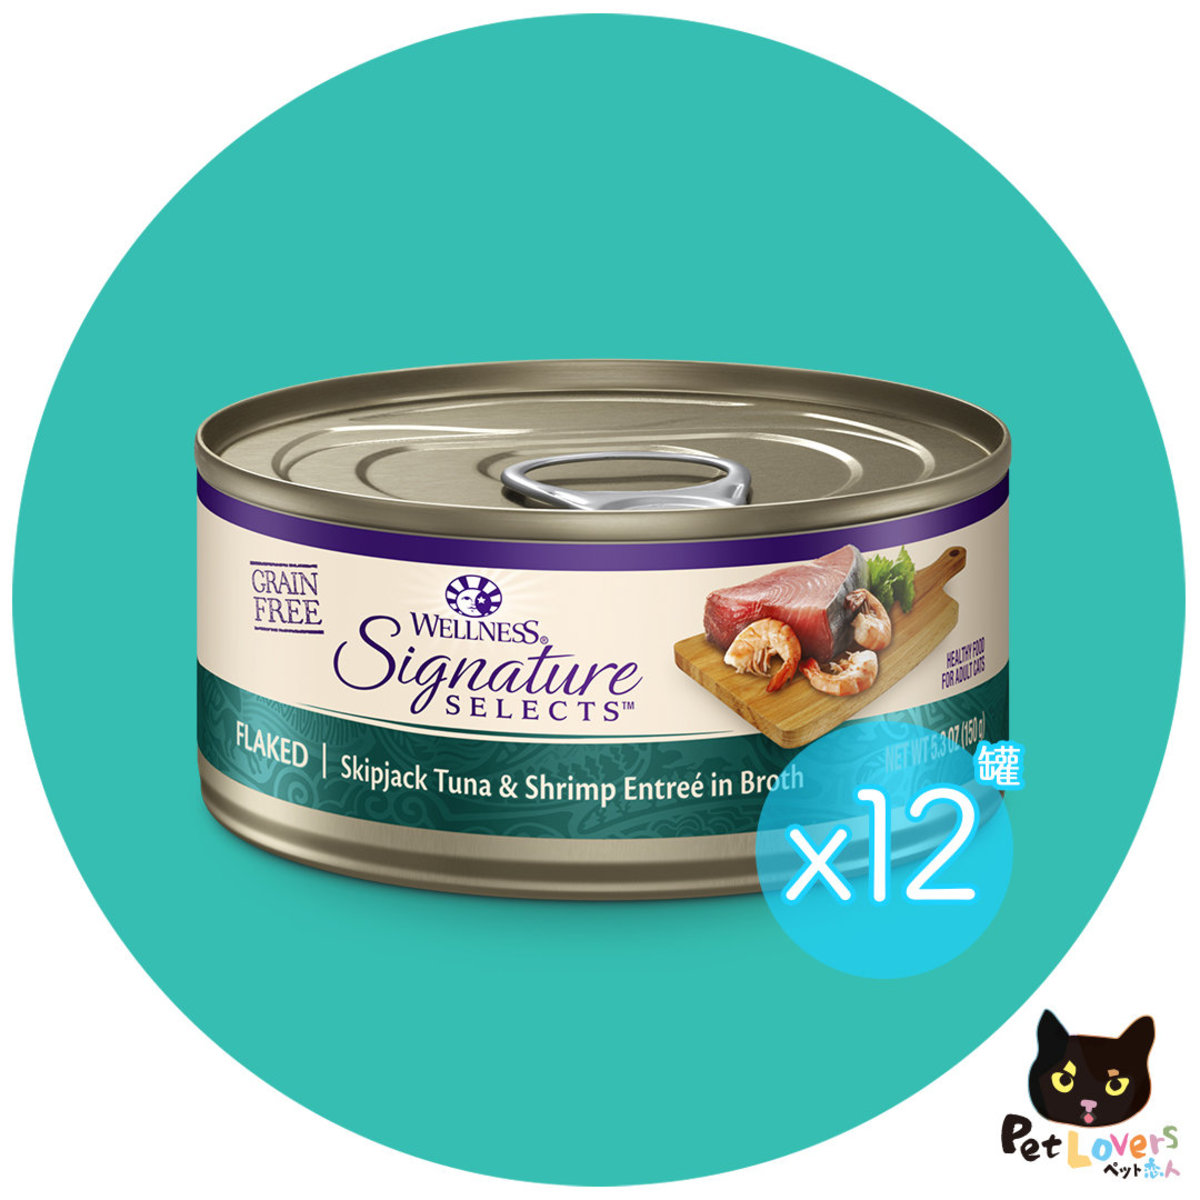 SIGNATURE SELECTS Flaked Skipjack Tuna & Shrimp 2.8oz